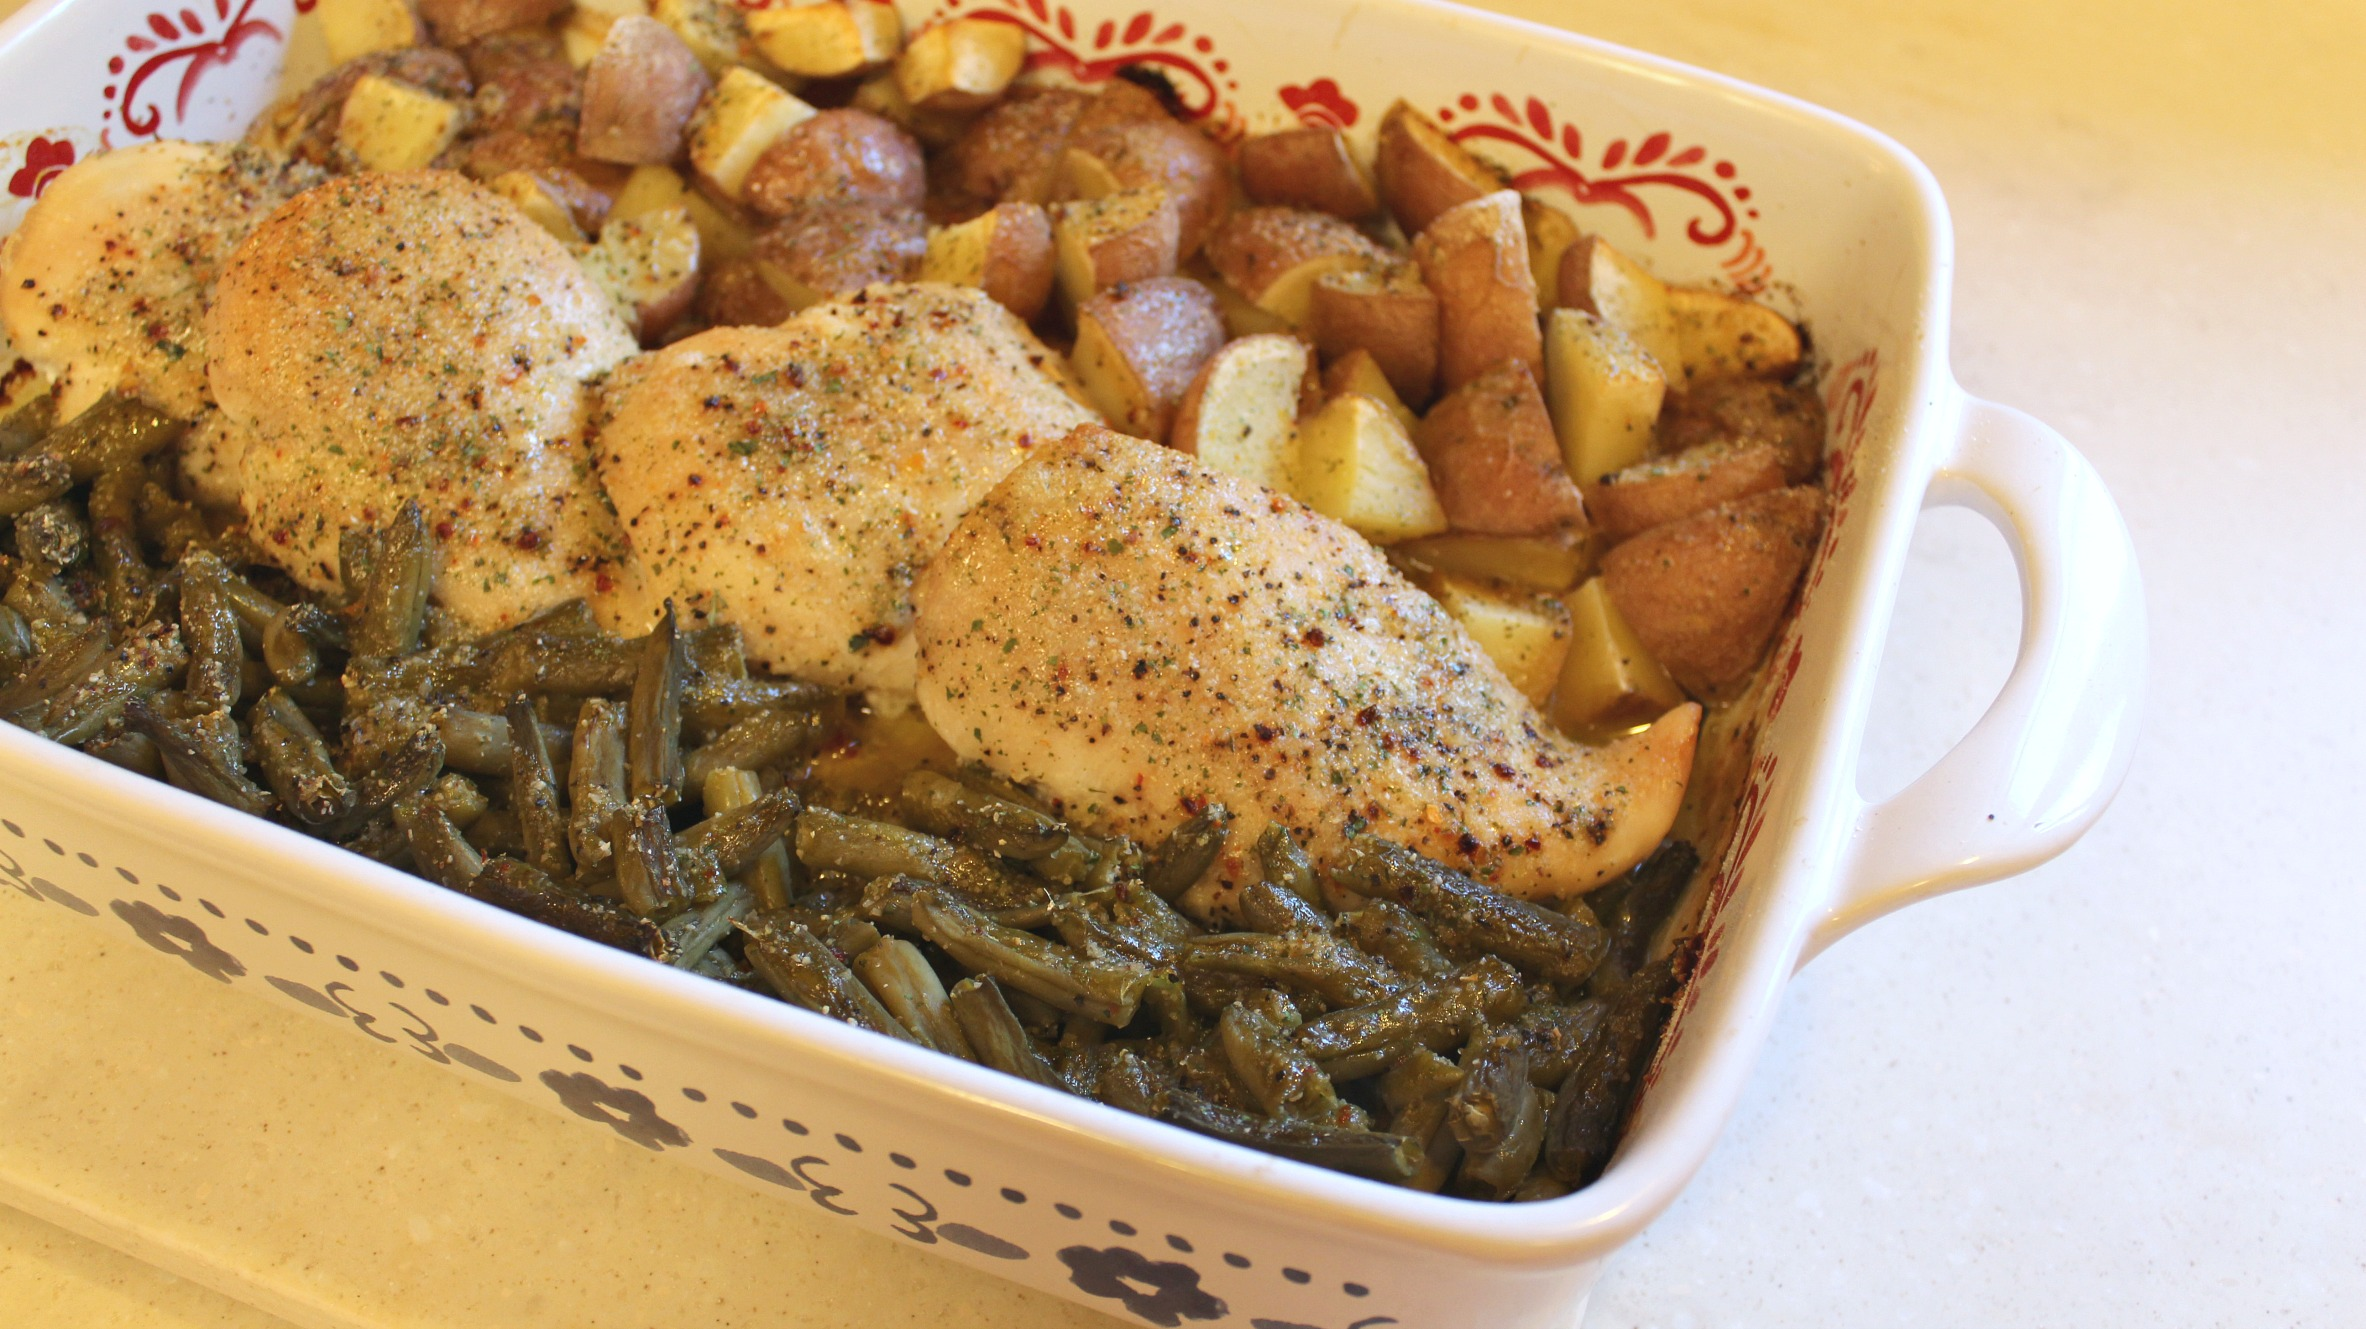 chicken in a baking dish with potatoes and green beans